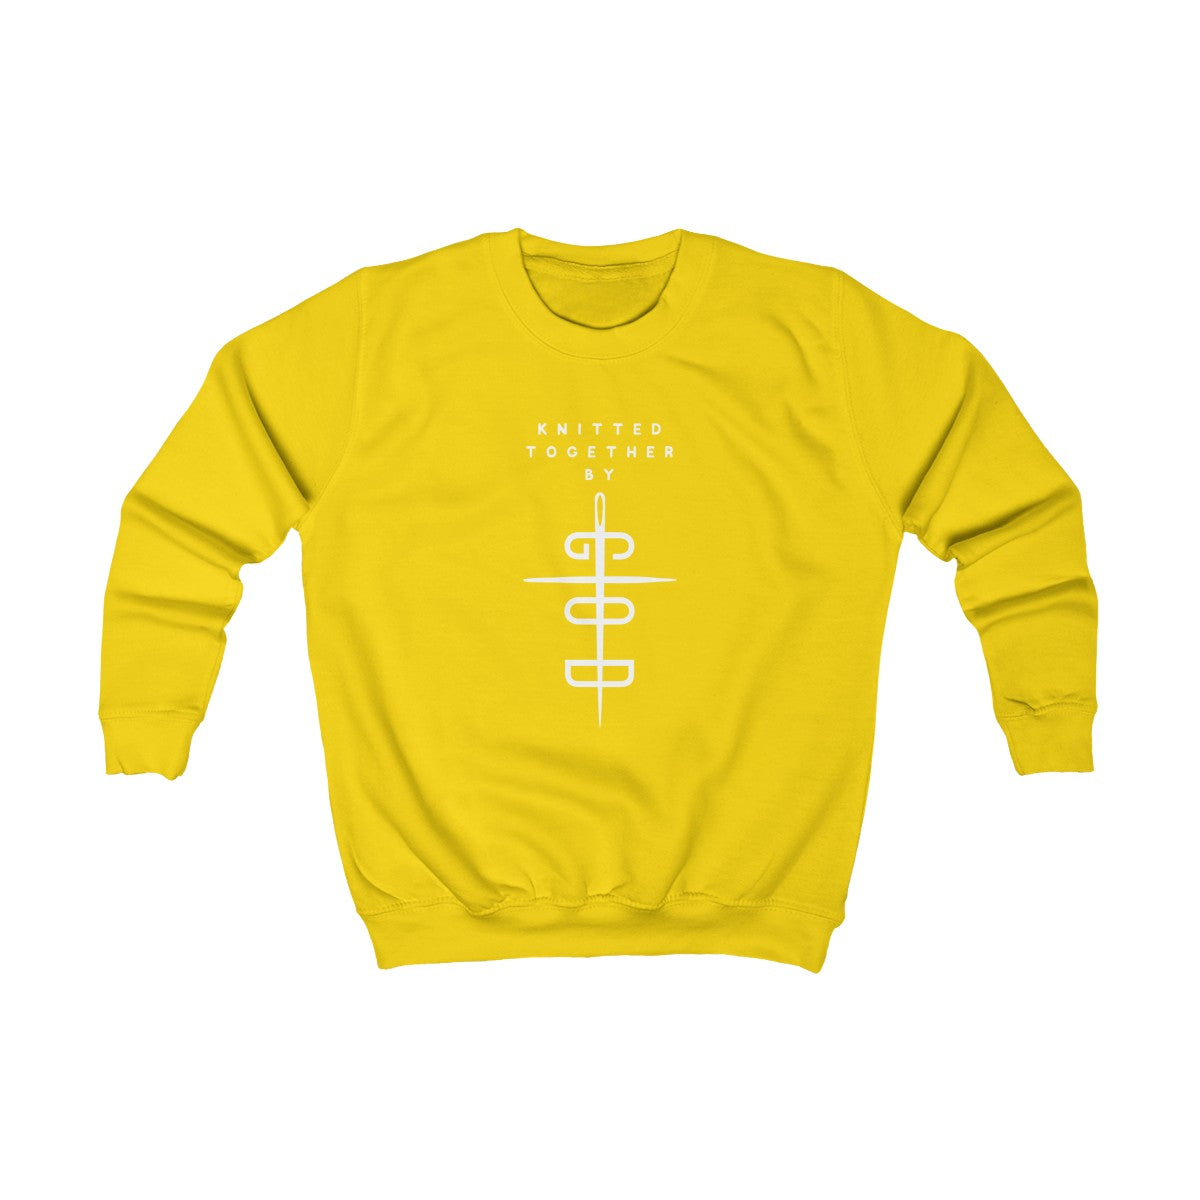 Knitted Together By God Kids Sweatshirt